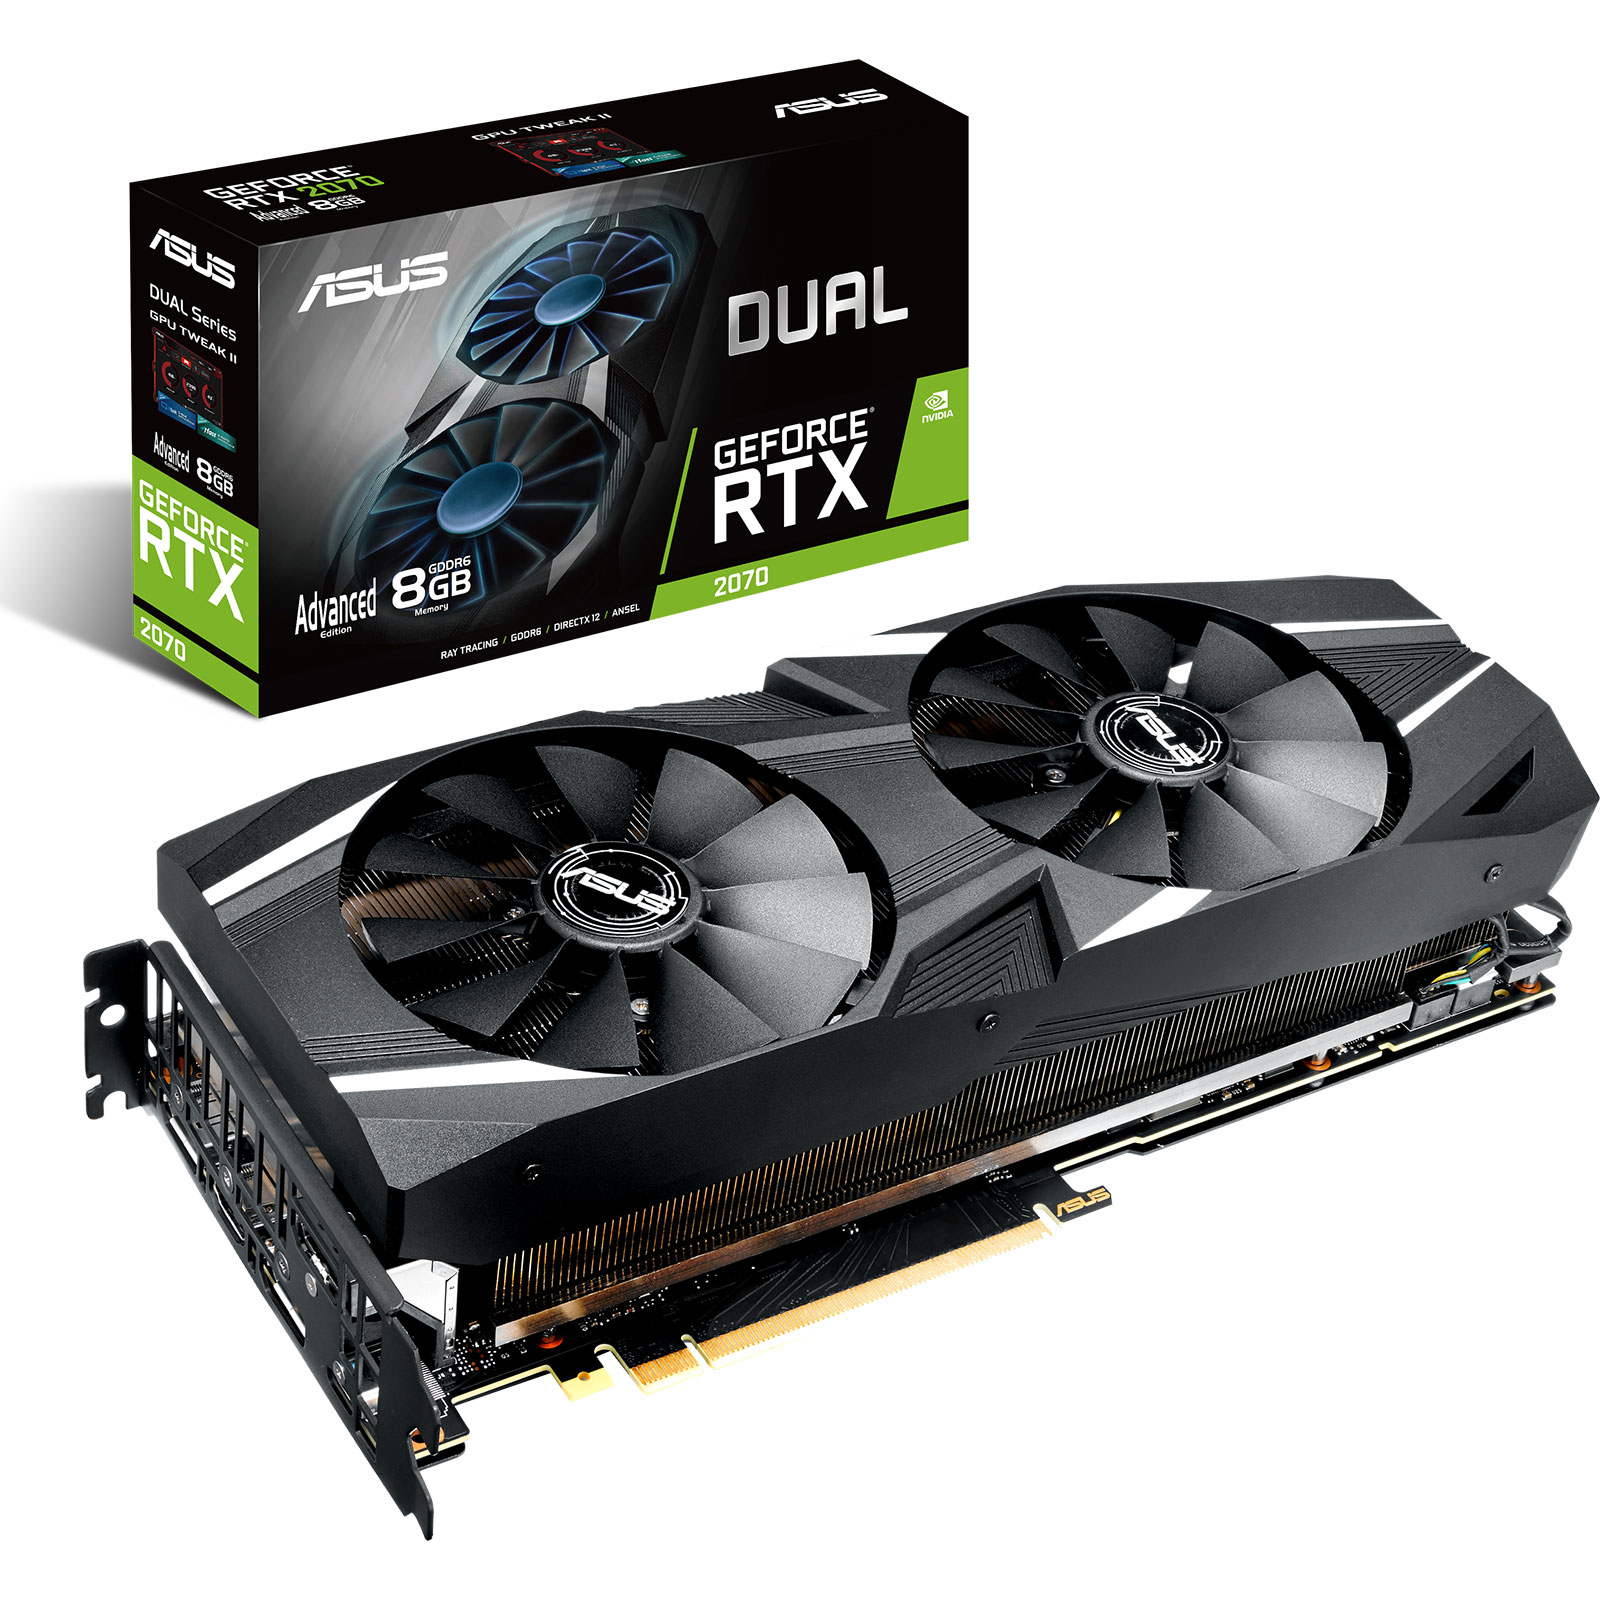 Carte graphique ASUS GeForce RTX 2070 - DUAL-RTX2070-A8G 8 Go GDDR6 - HDMI/Tri DisplayPort/USB Type-C - PCI Express (NVIDIA GeForce RTX 2070)